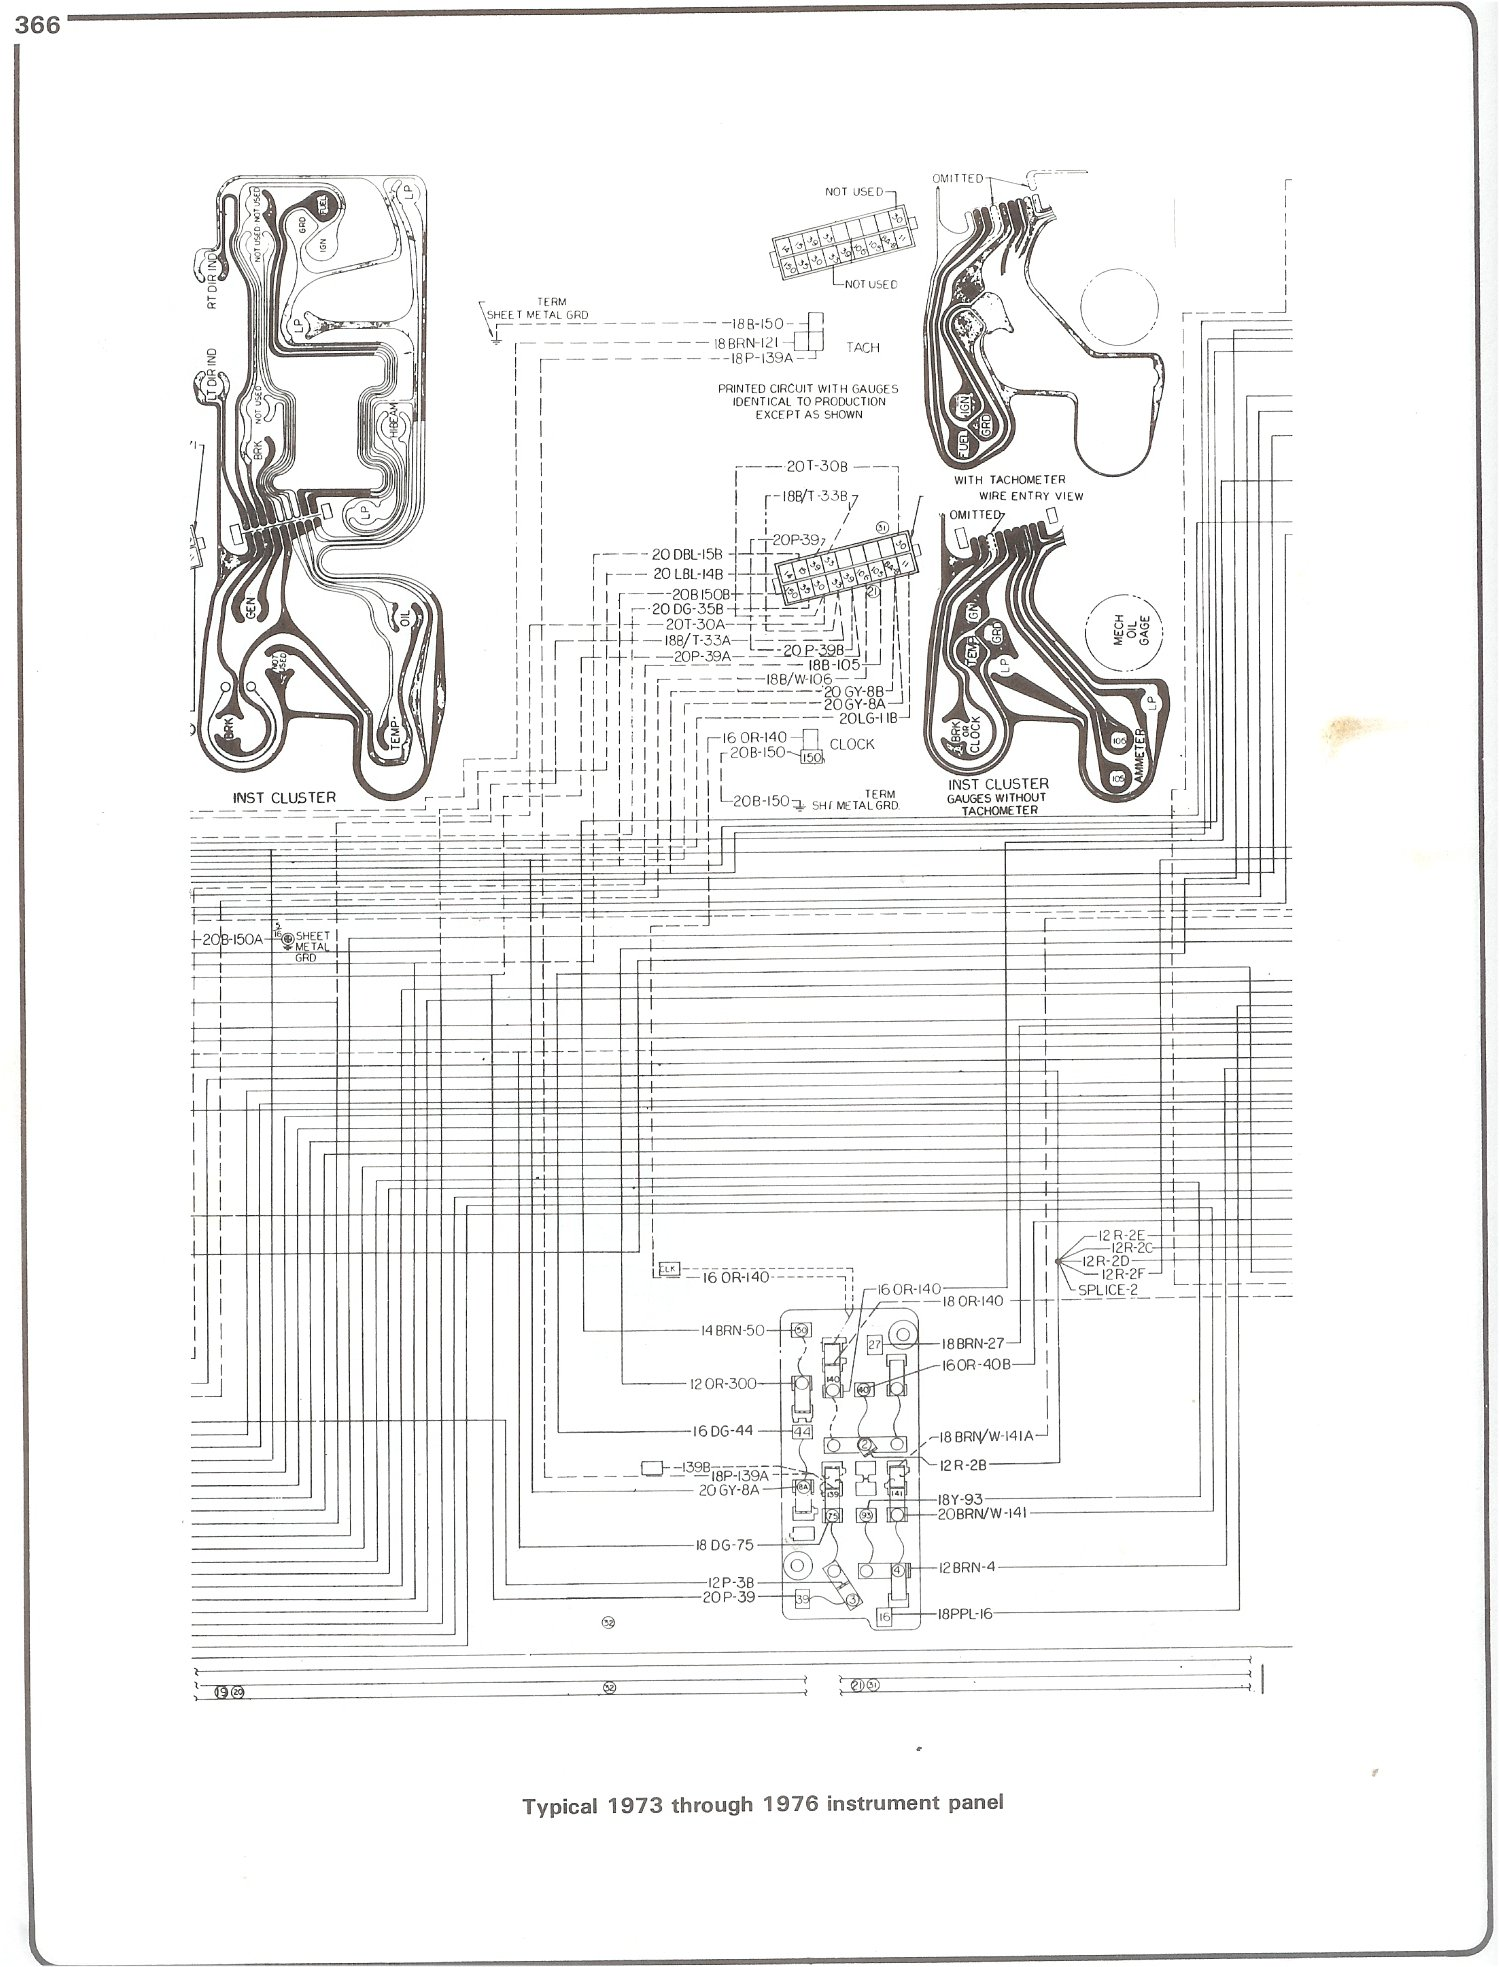 Complete 73-87 Wiring Diagrams on chevy fuse box diagram, chevy headlight sensor, chevy radiator diagram, 2004 chevy trailblazer transmission diagram, 4l60e wiring harness diagram, dodge wiring harness diagram, chevy headlight adjustment, chevy silverado fuel system diagram, 2005 chevy impala ignition switch diagram, 1963 c10 dash diagram, relay wiring diagram, chevy alternator diagram, headlight dimmer switch diagram, 2000 chevrolet truck wiring diagram, chevy headlight switch, chevy light switch diagram, 97 chevy truck tail light diagram, chevy drl relay, headlight wire harness diagram, headlight circuit diagram,